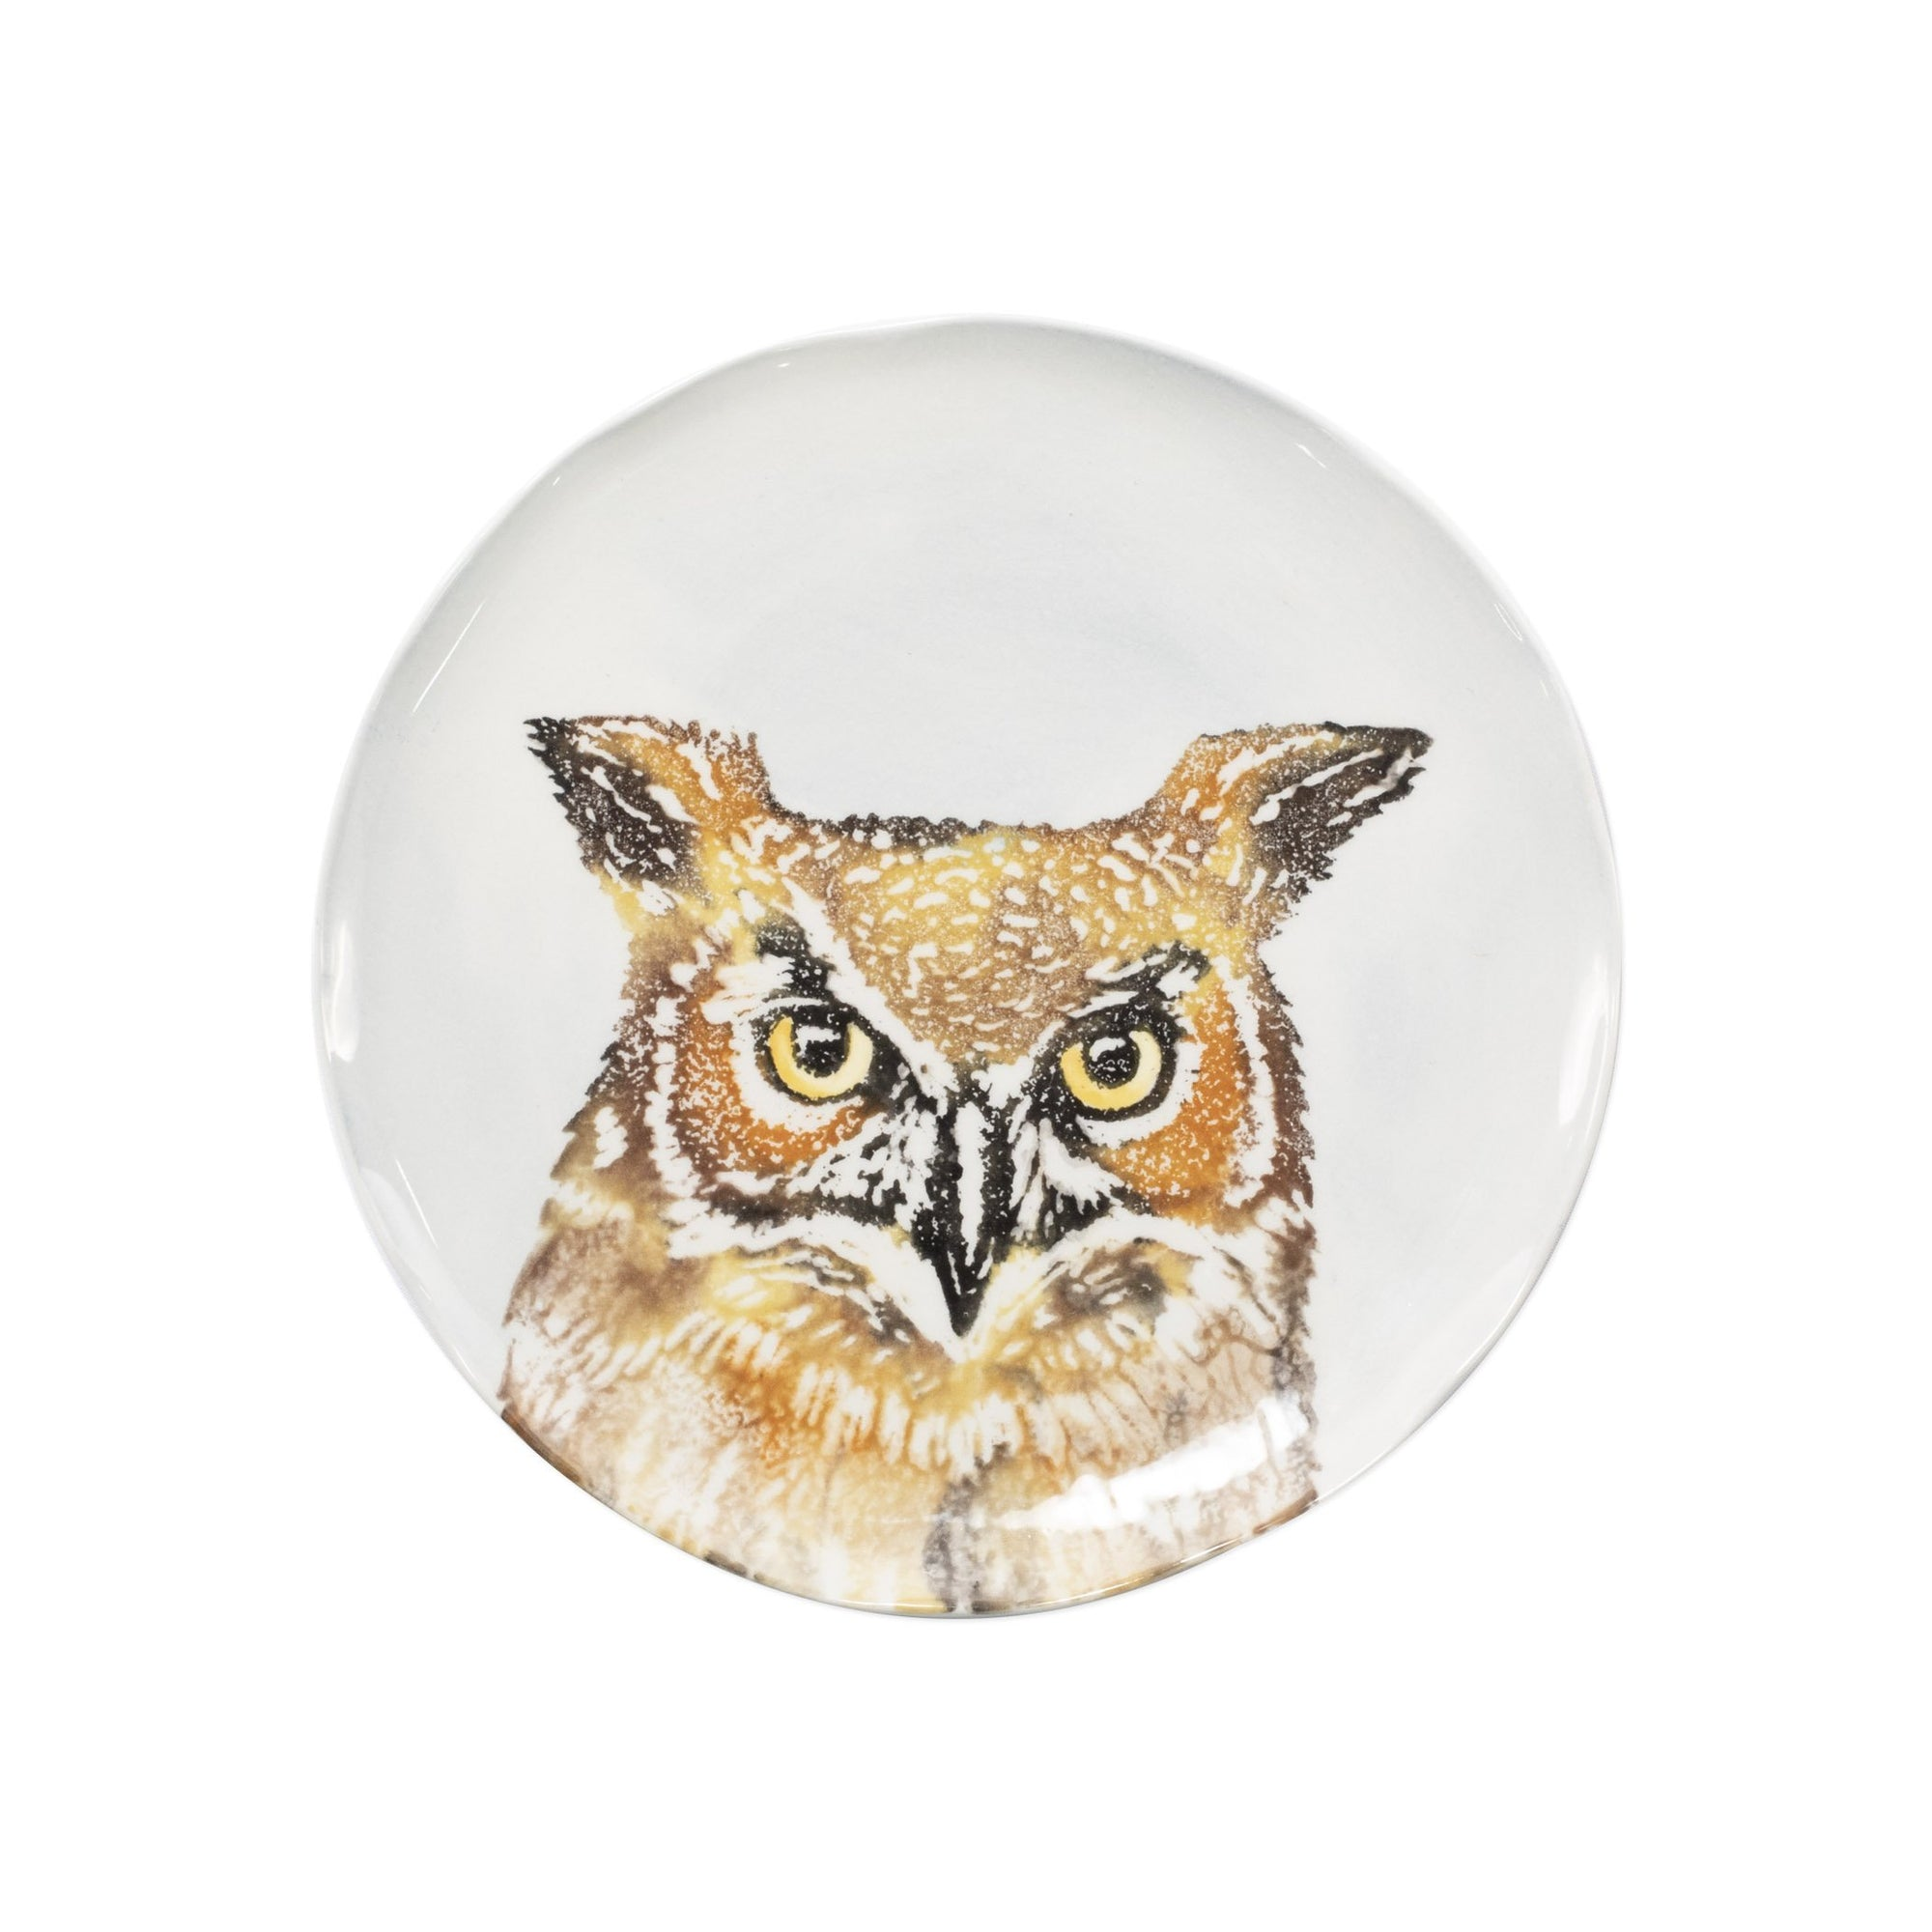 Into the Woods Owl Salad Plate by VIETRI